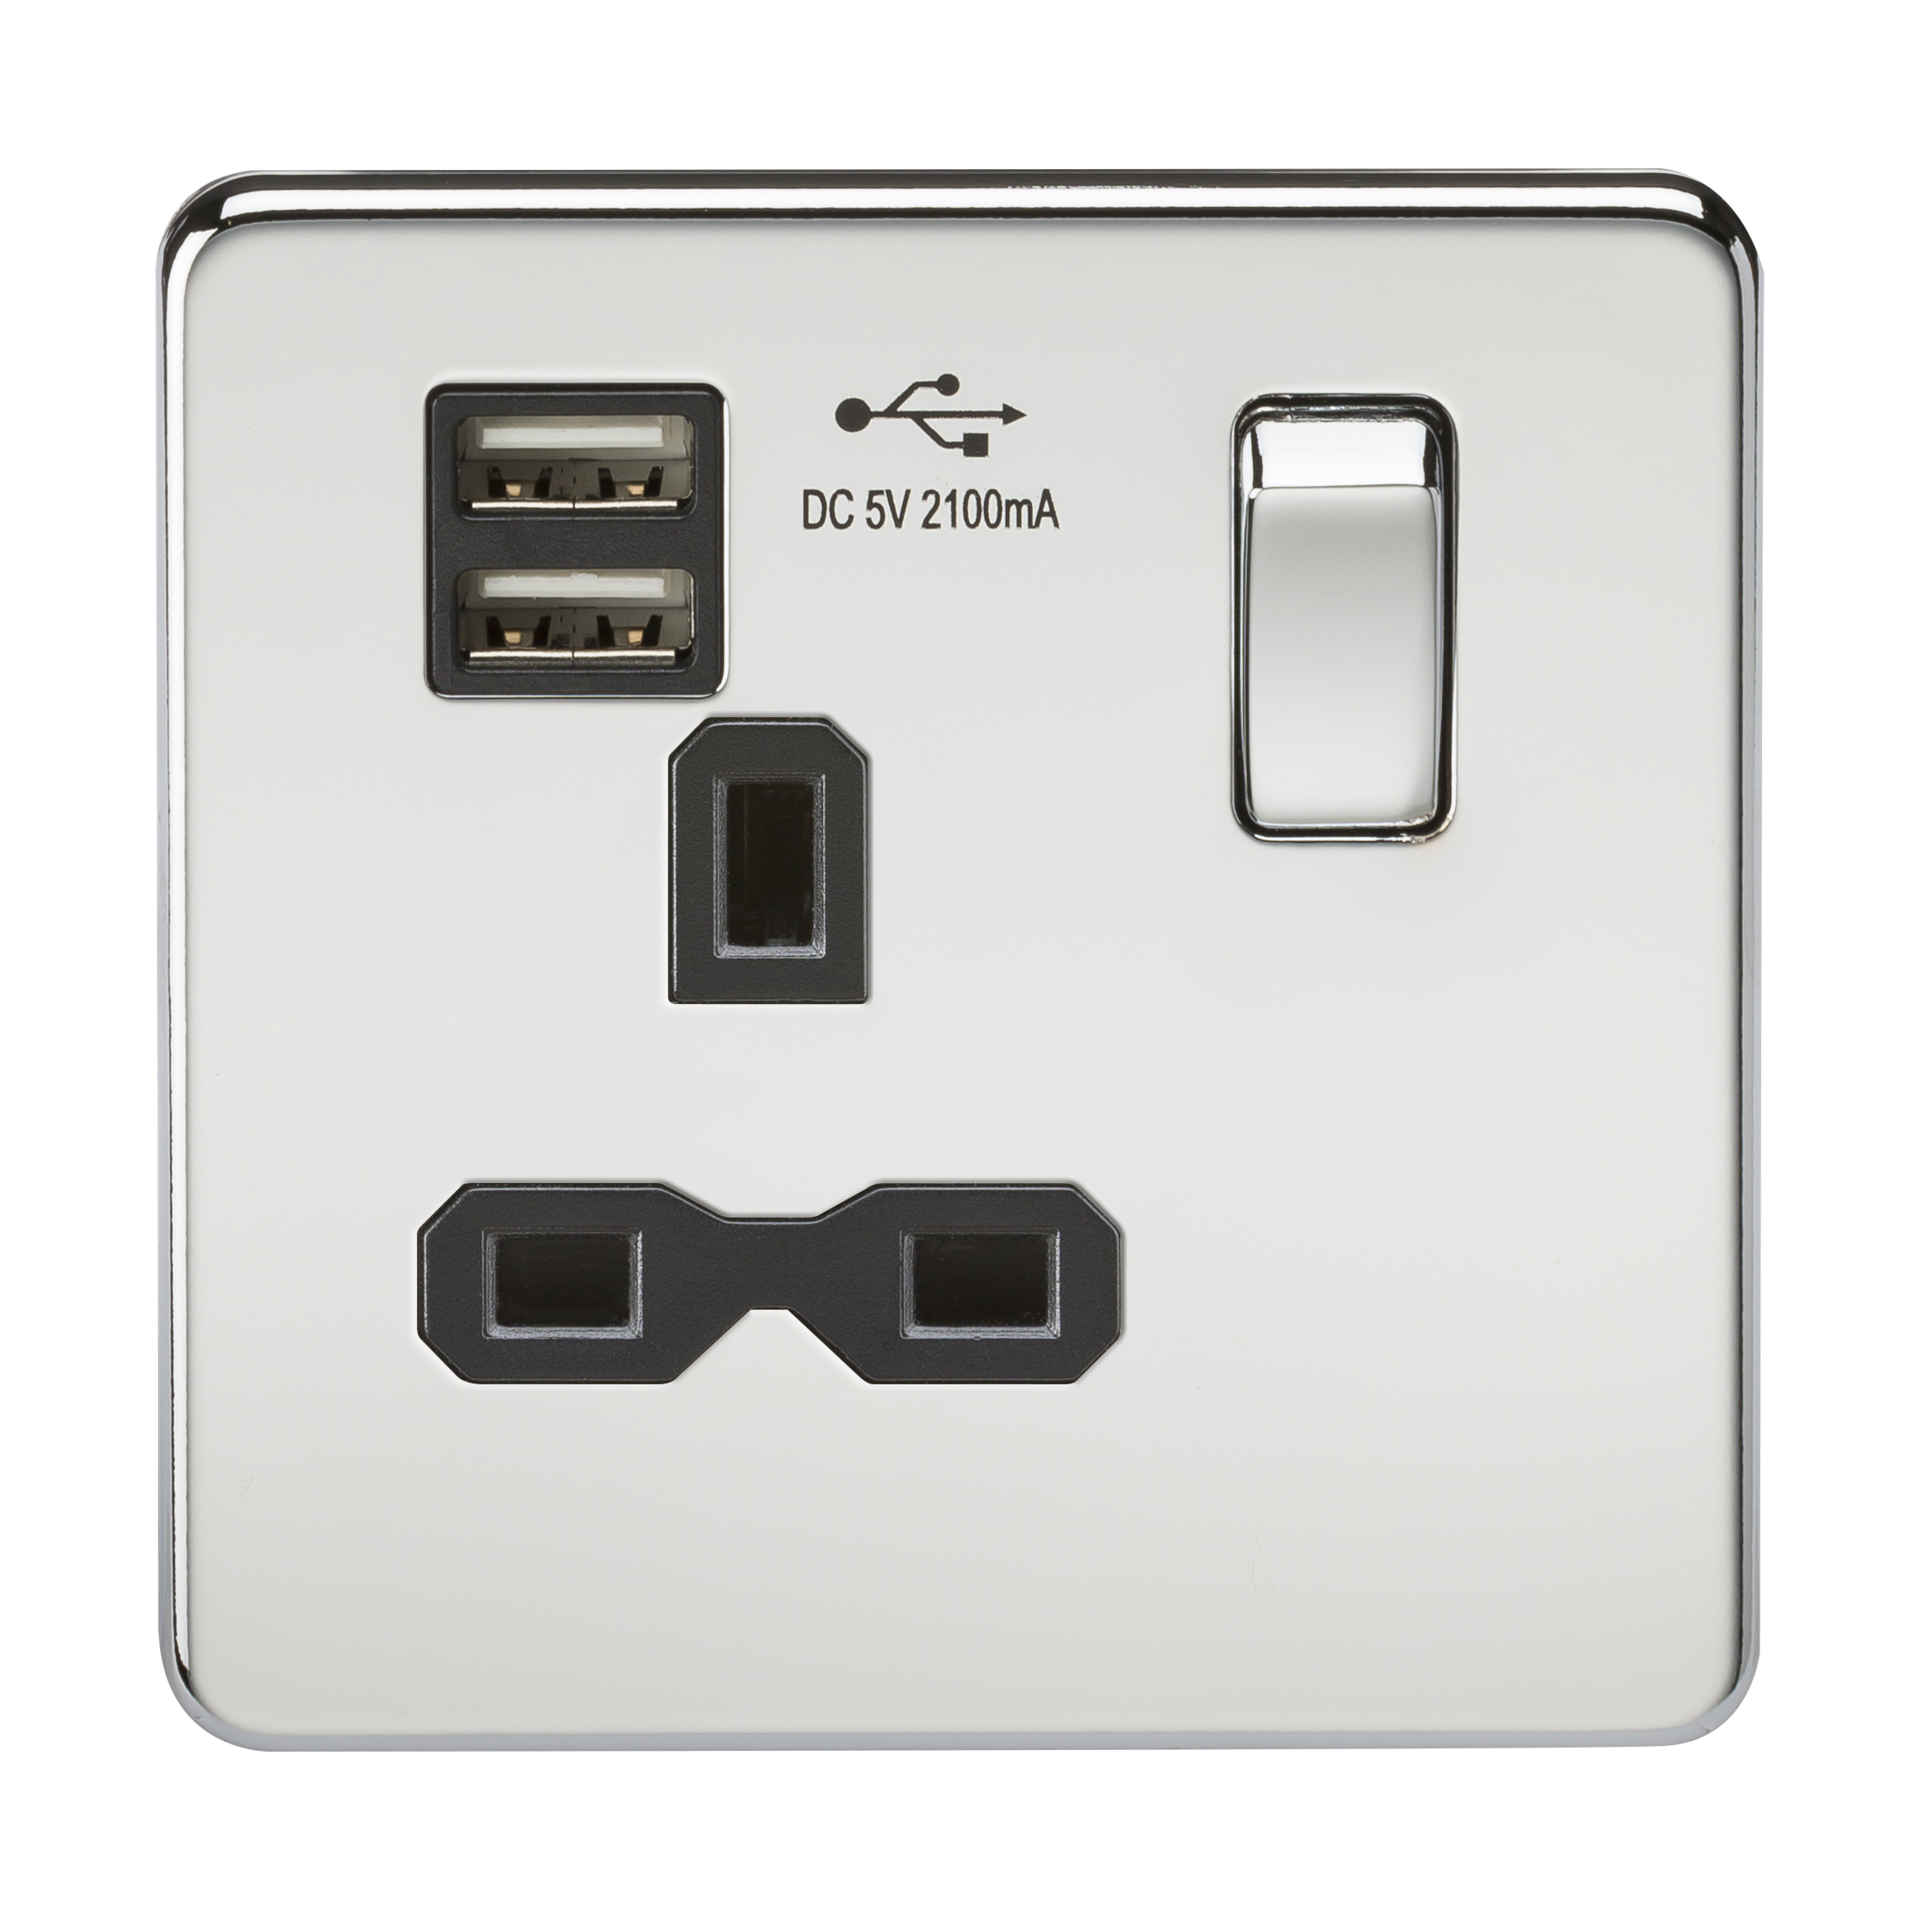 SCREWLESS 13A 1G SWITCHED SOCKET WITH DUAL USB CHARGER - POLISHED CHROME WITH BLACK INSERT